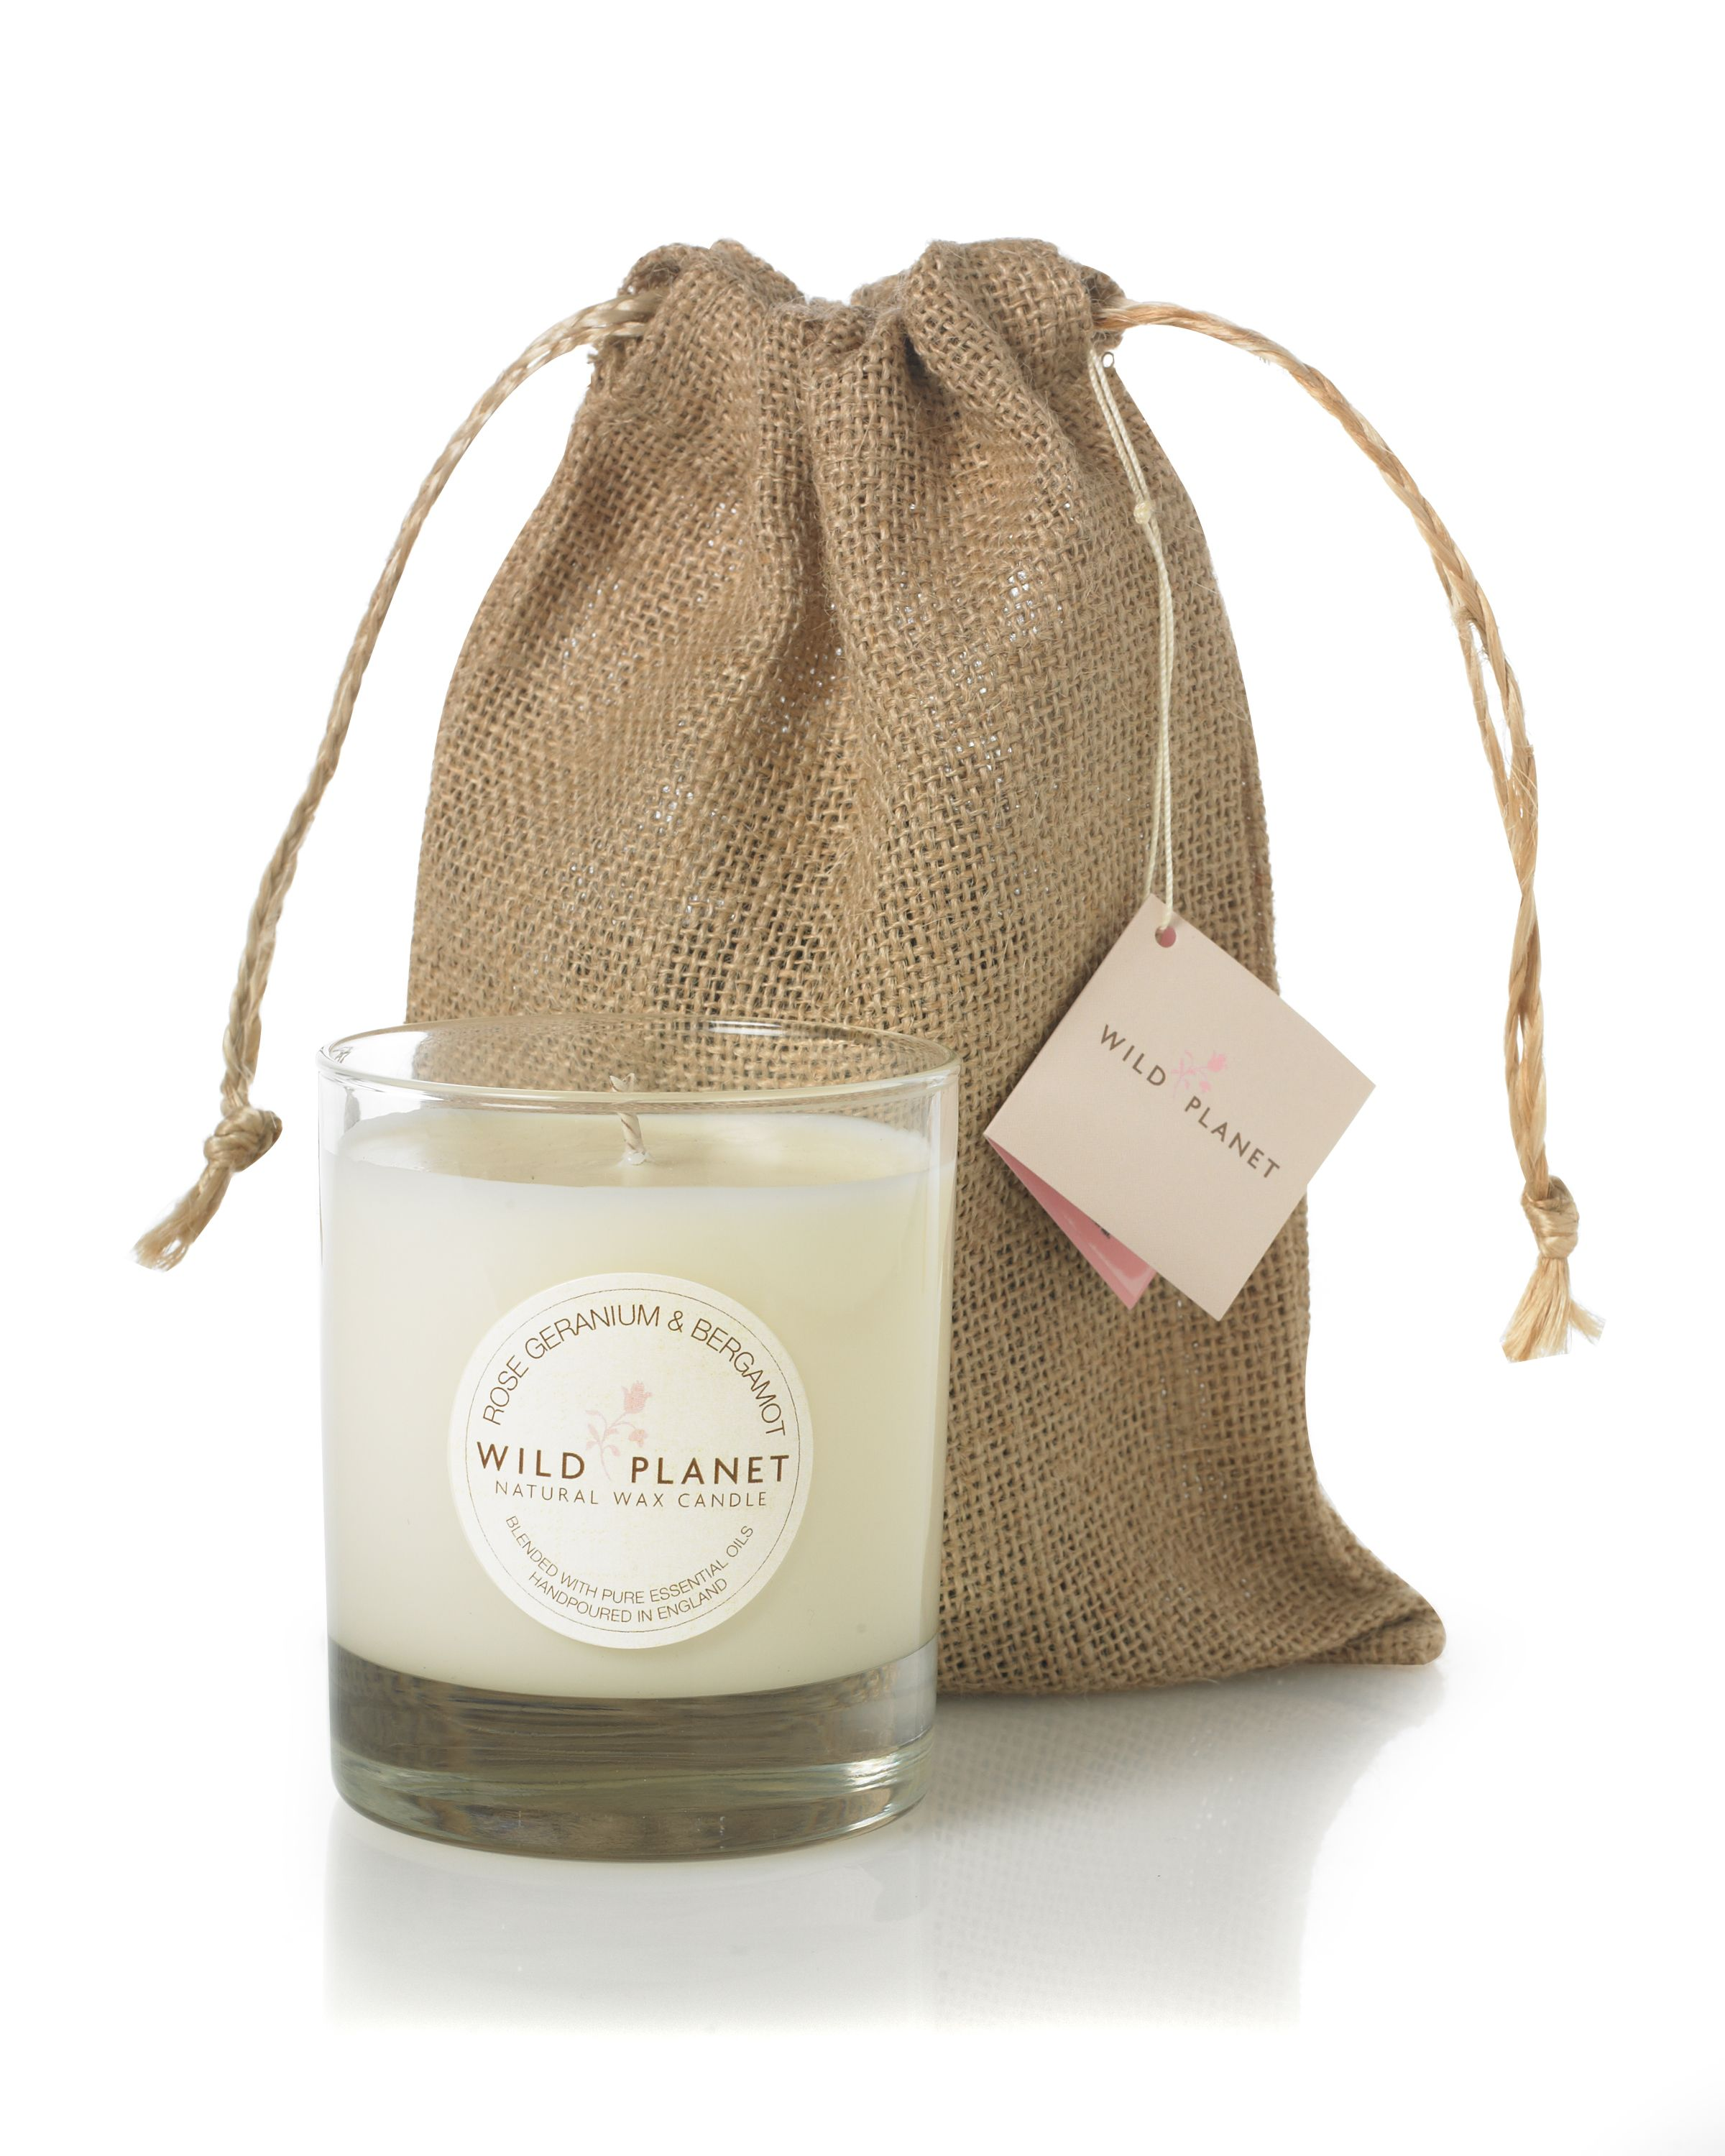 Rose Geranium & Bergamot Aromatherapy Medium Candle in Jute Bag - natural soy wax with a 40 hour burn time. Blended with rose geranium & bergamot pure essential oils. Rejuvenating, harmonizing stress busting, can help to combat general fatigue. £21.95